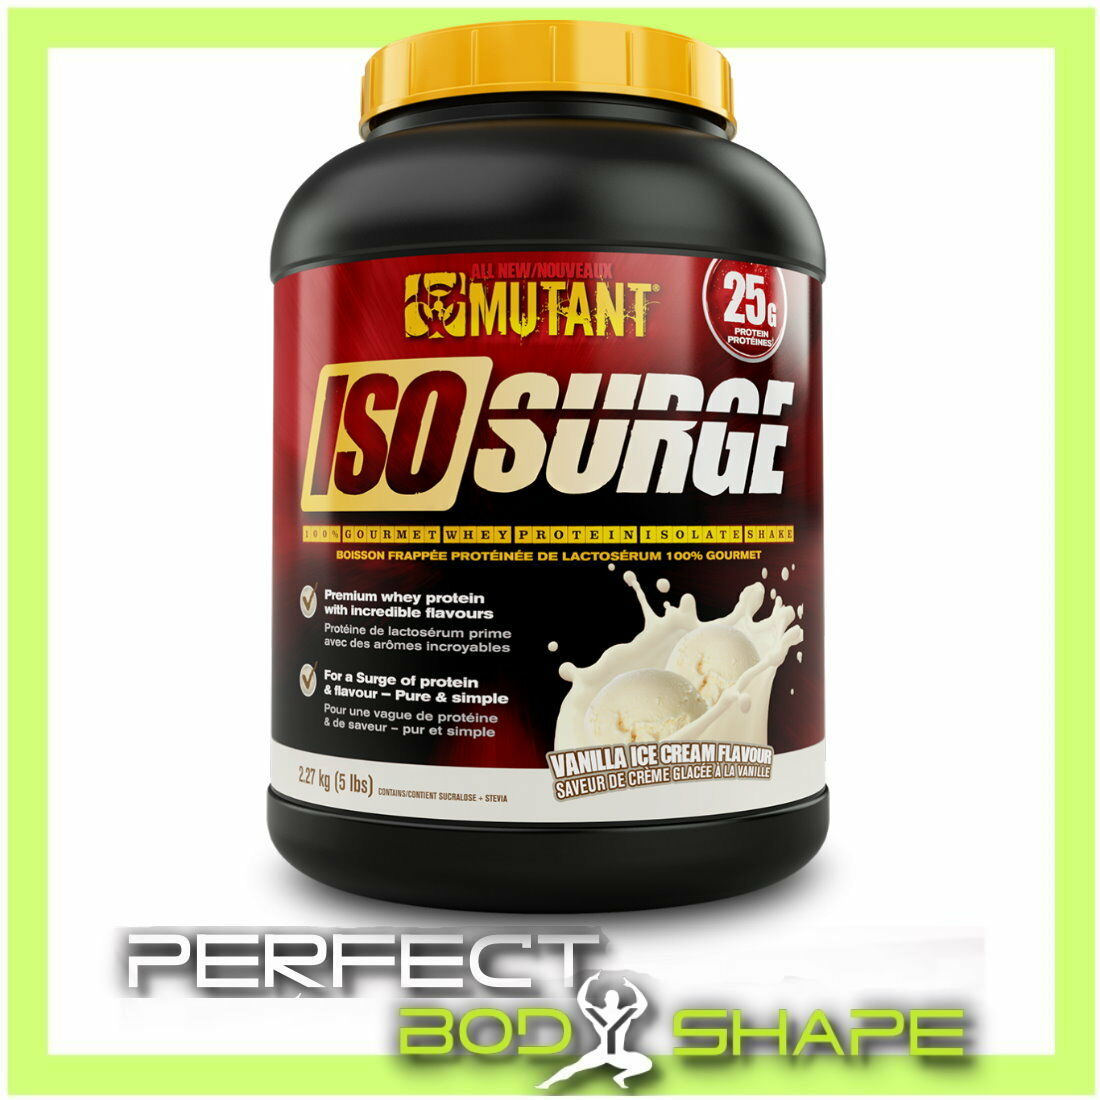 Mutant Iso Surge 100 Gourmet Whey Protein Isolate Wpi Wph Meal 90 500gr Replacement